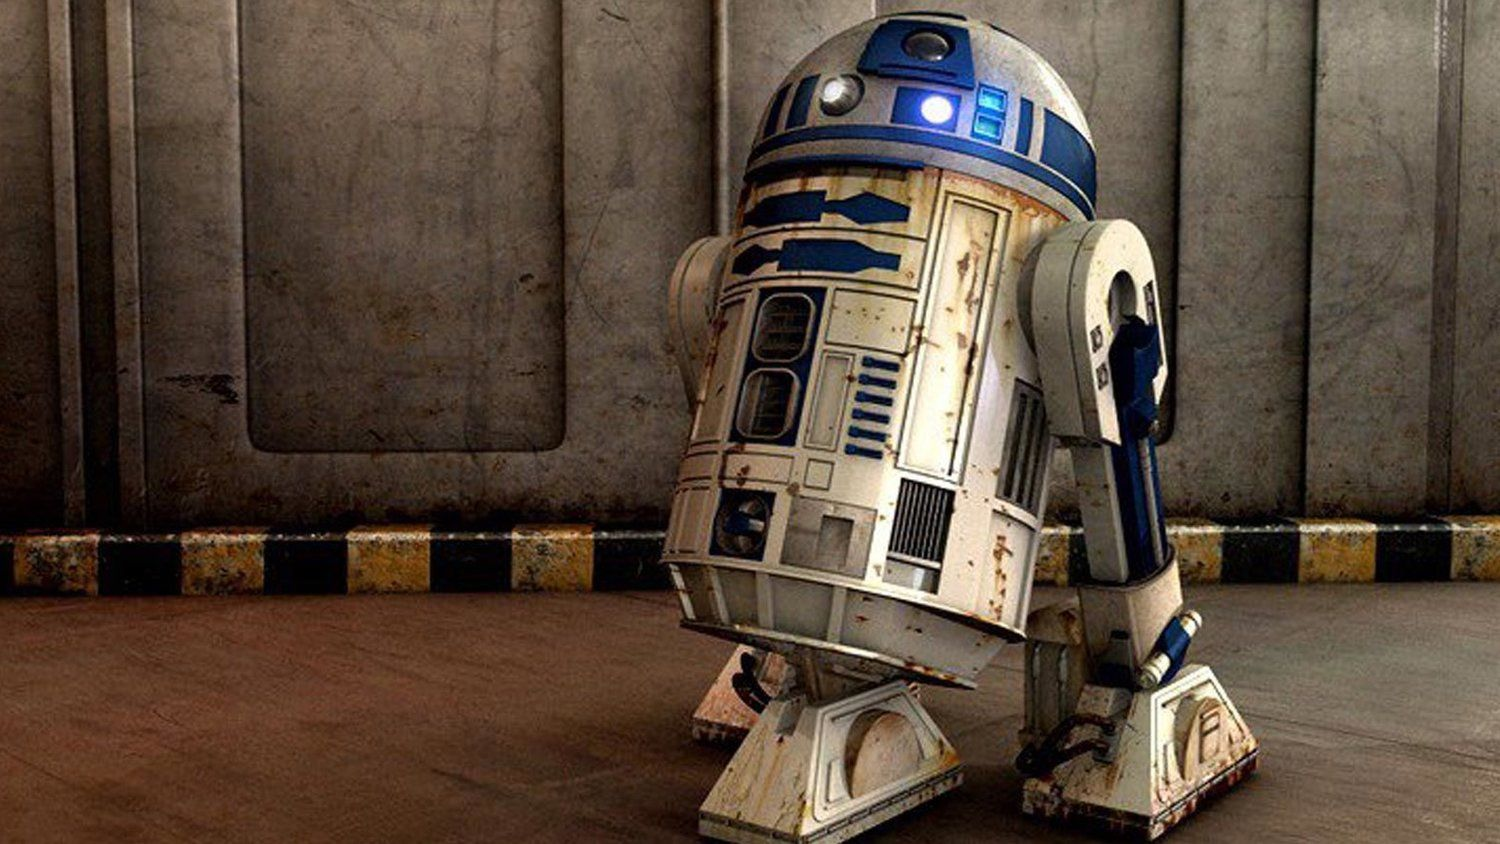 The Role of R2-D2 Has Been Filled by Jimmy Vee in STAR WARS: THE LAST JEDI